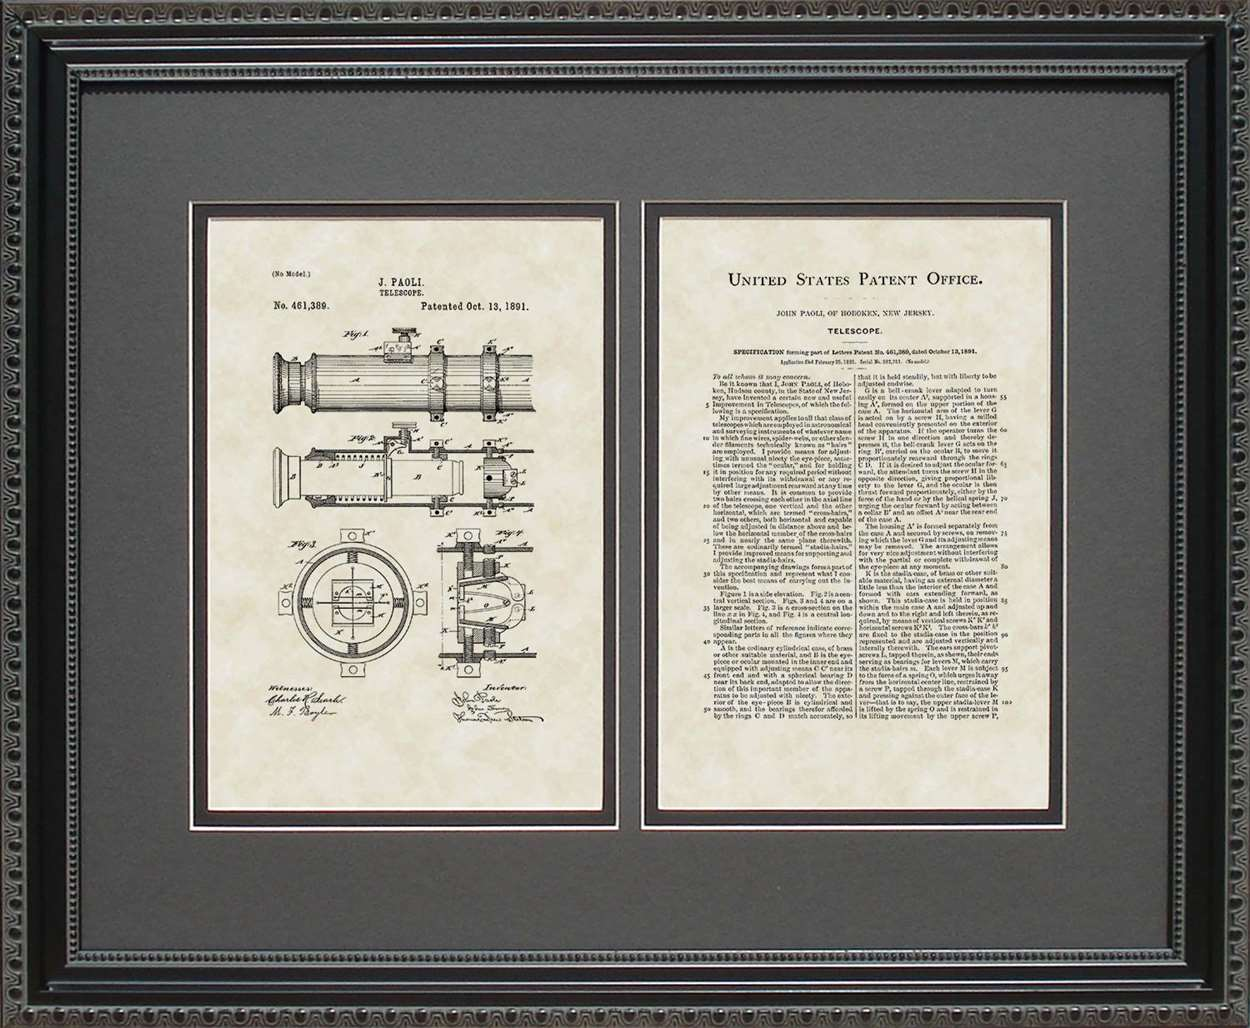 Telescope Patent, Art & Copy, Paoli, 1891, 16x20